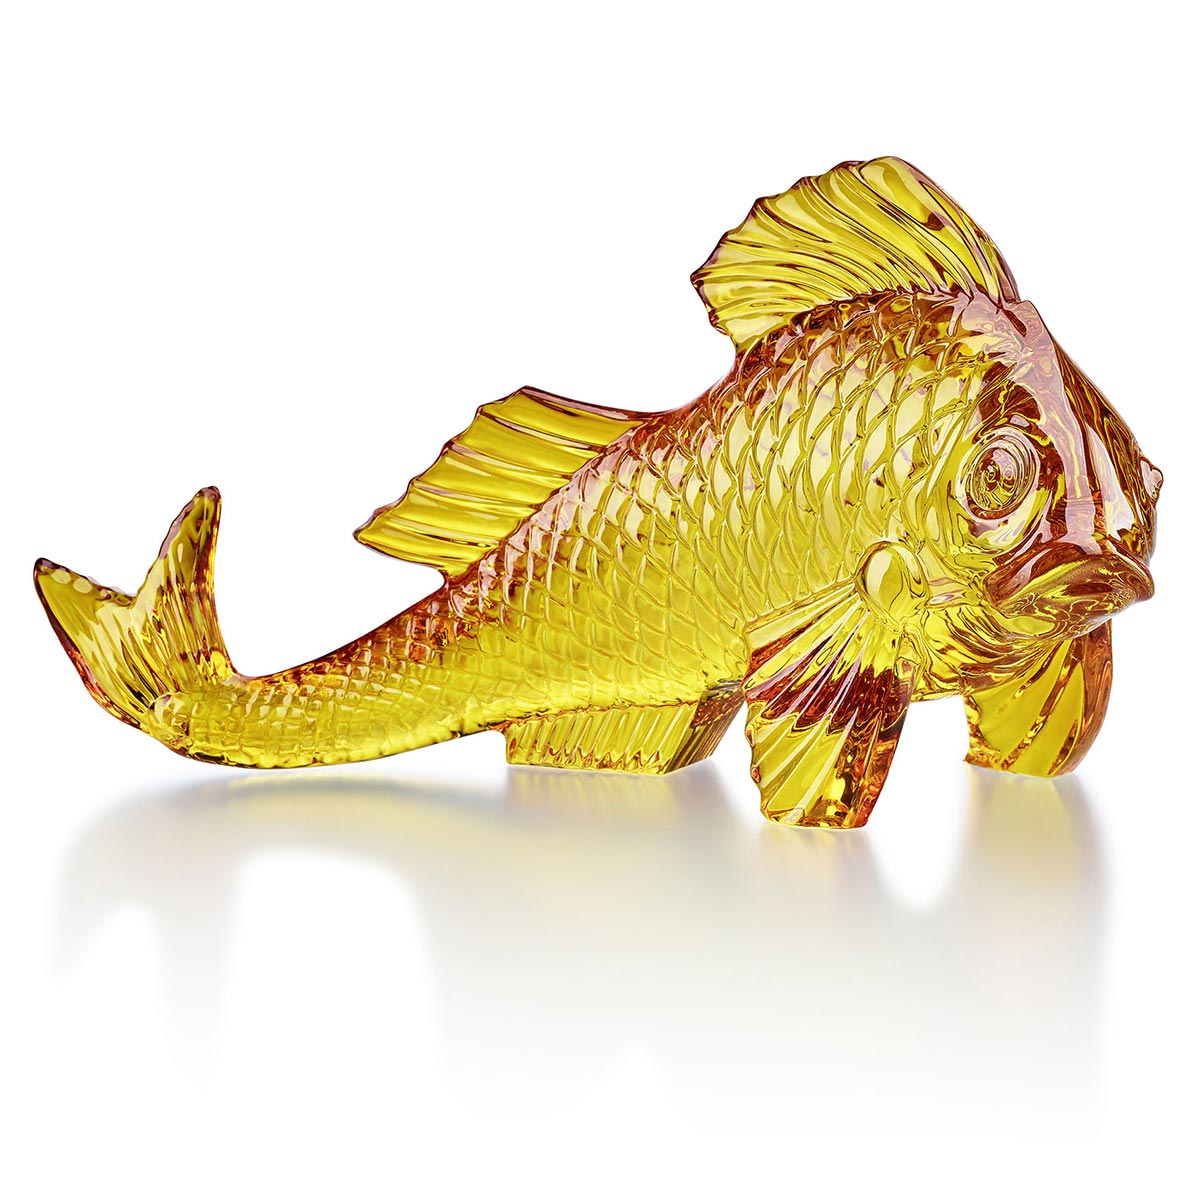 Poisson carpe ambre<br>H: 15.5cm, L: 30cm<br>Carpe